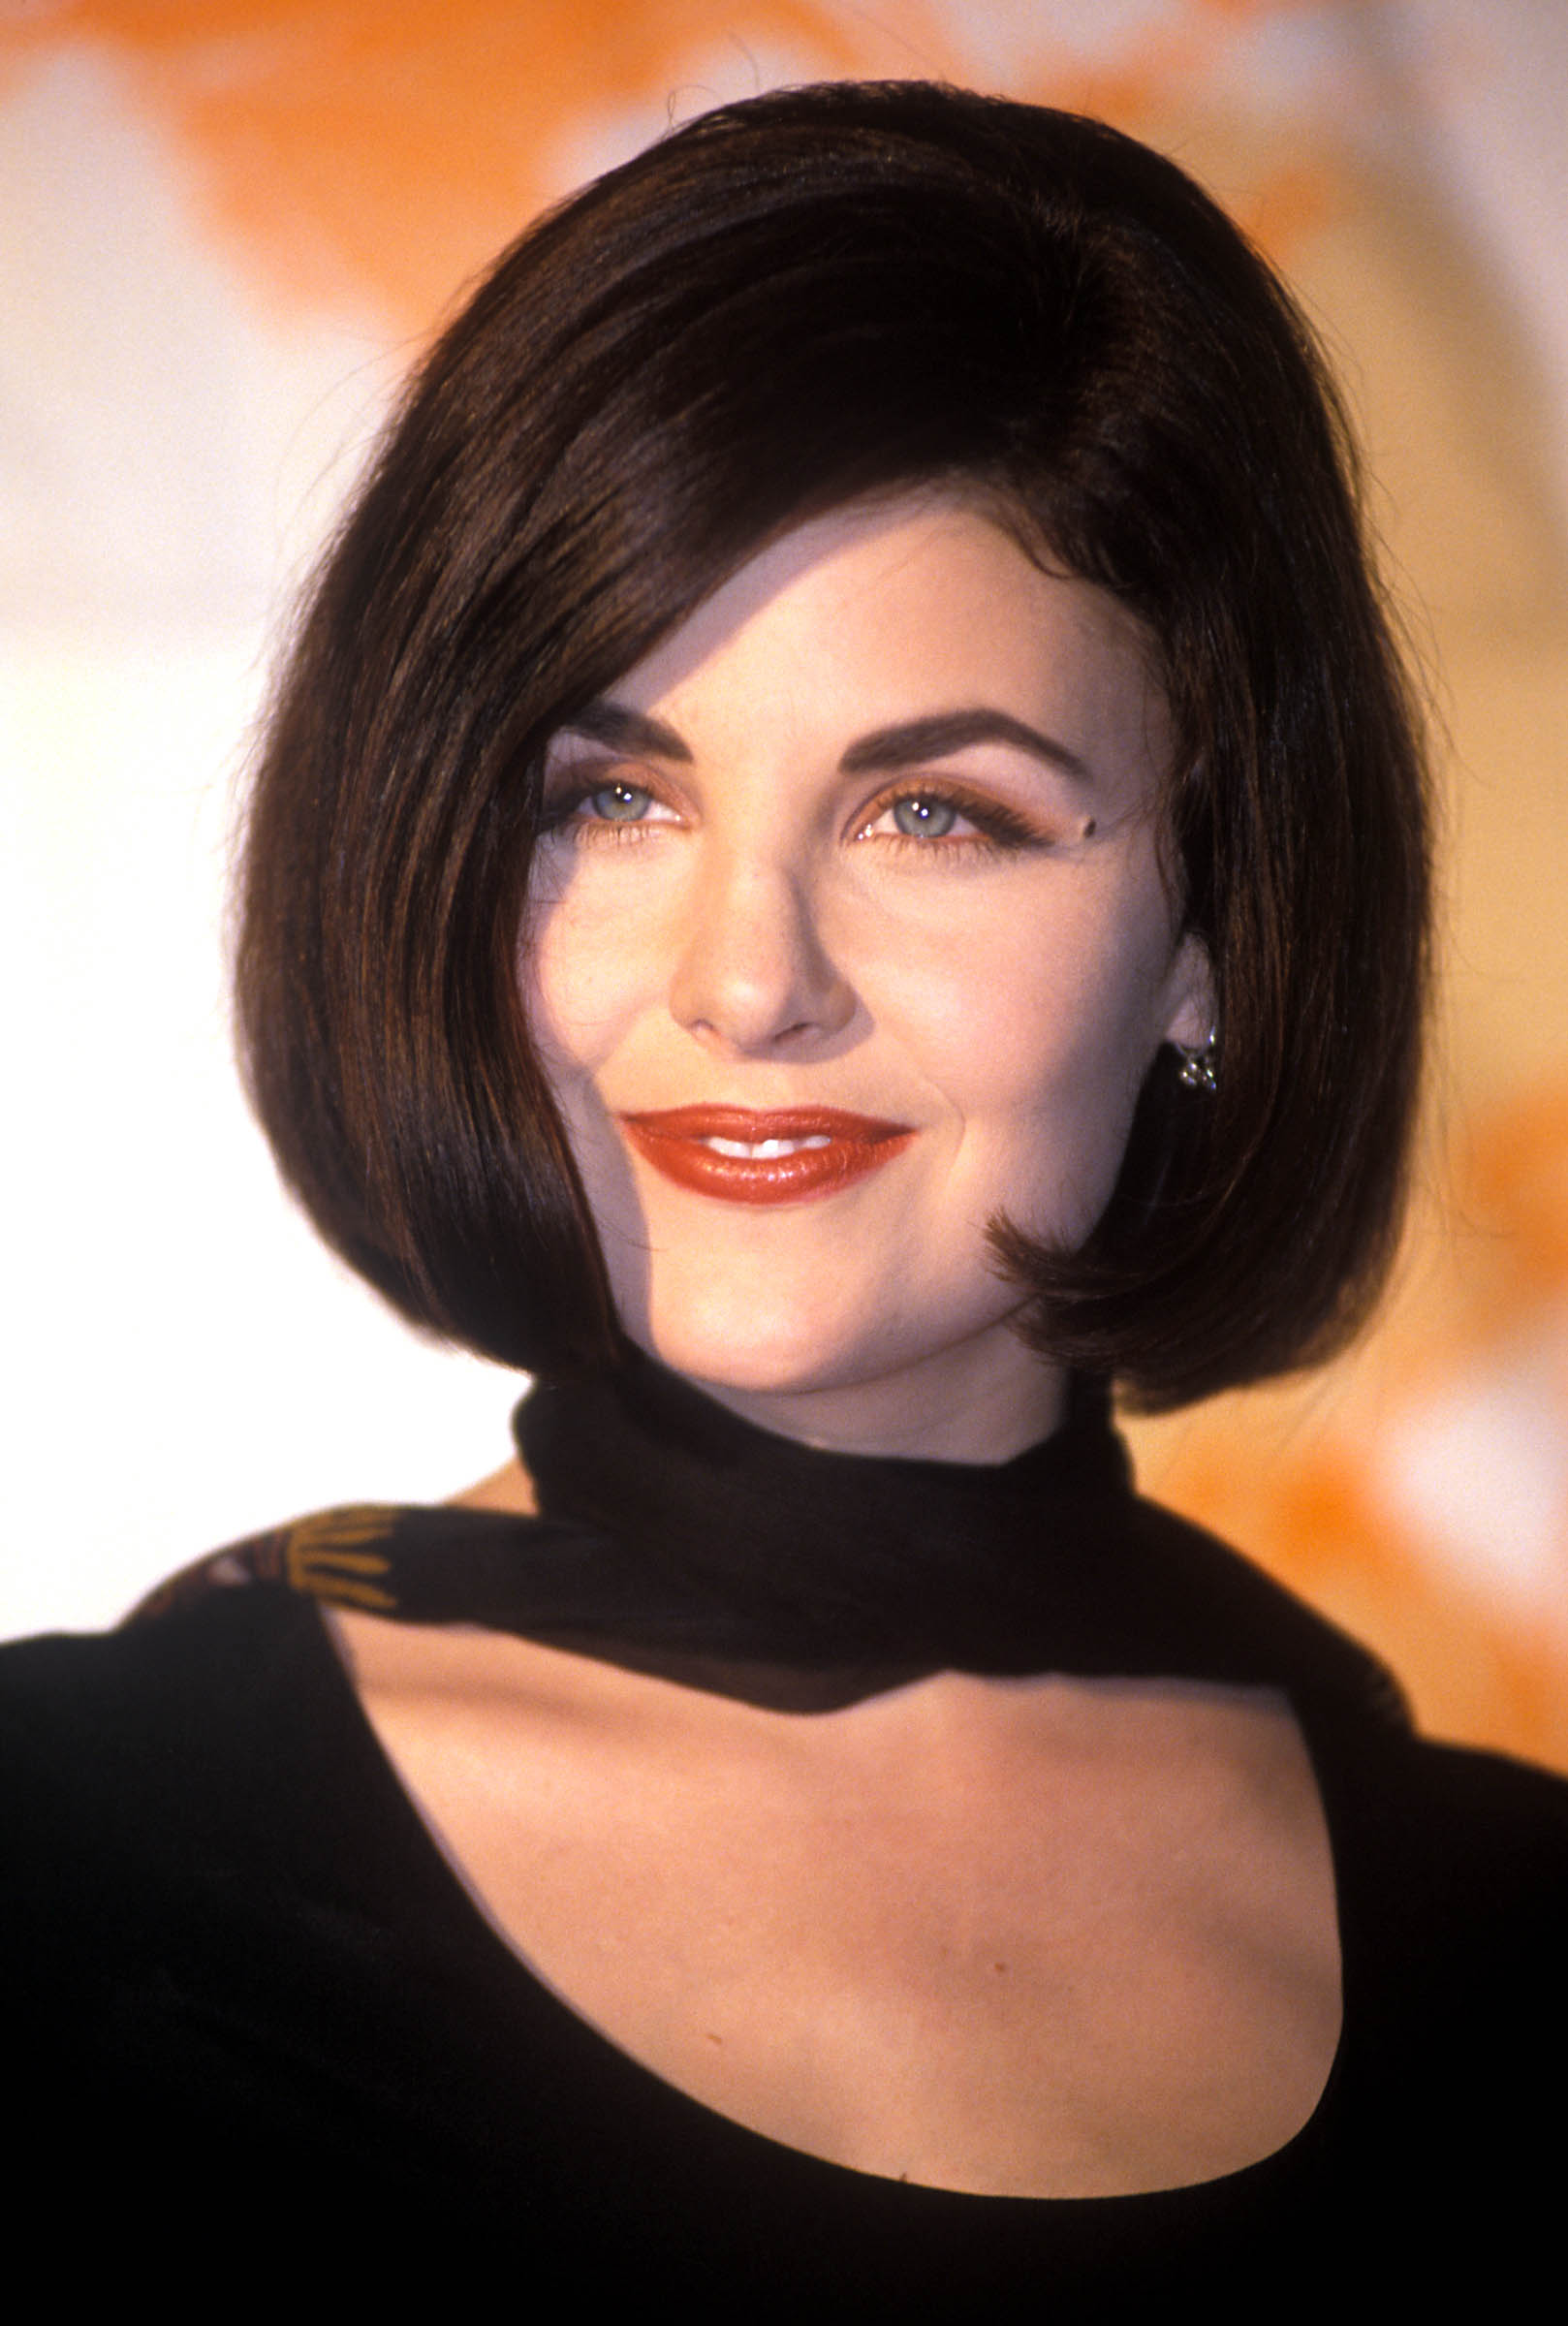 fenn dating Relationship dating details of sherilyn fenn and prince and all the other celebrities they've hooked up with.